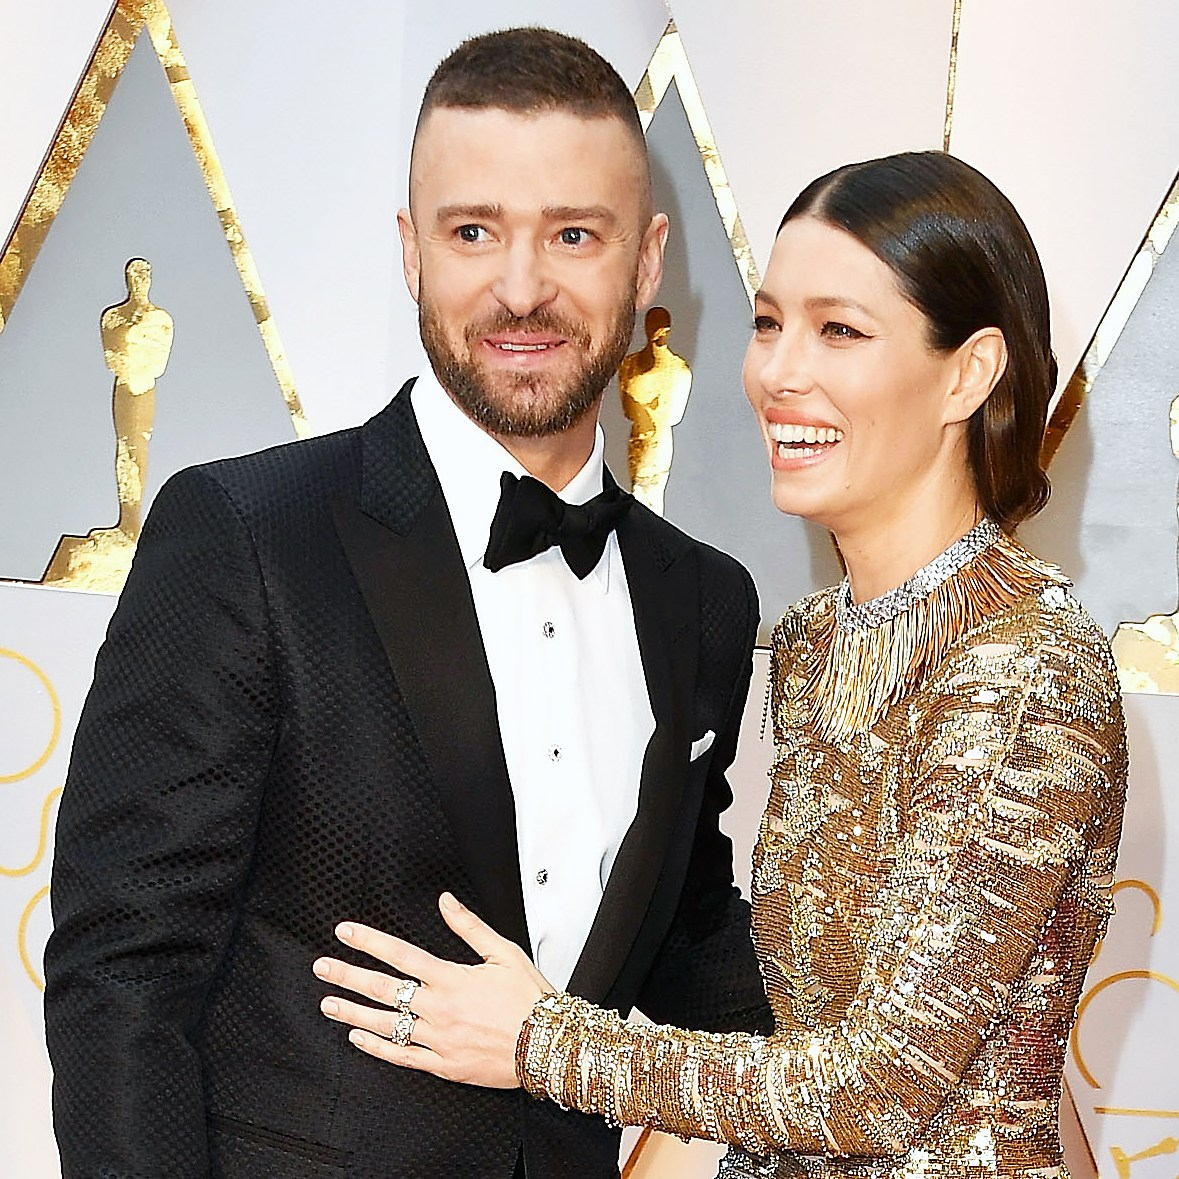 Jessica Biel Gushes Over Justin Timberlake on First Night of Man of the Woods Tour